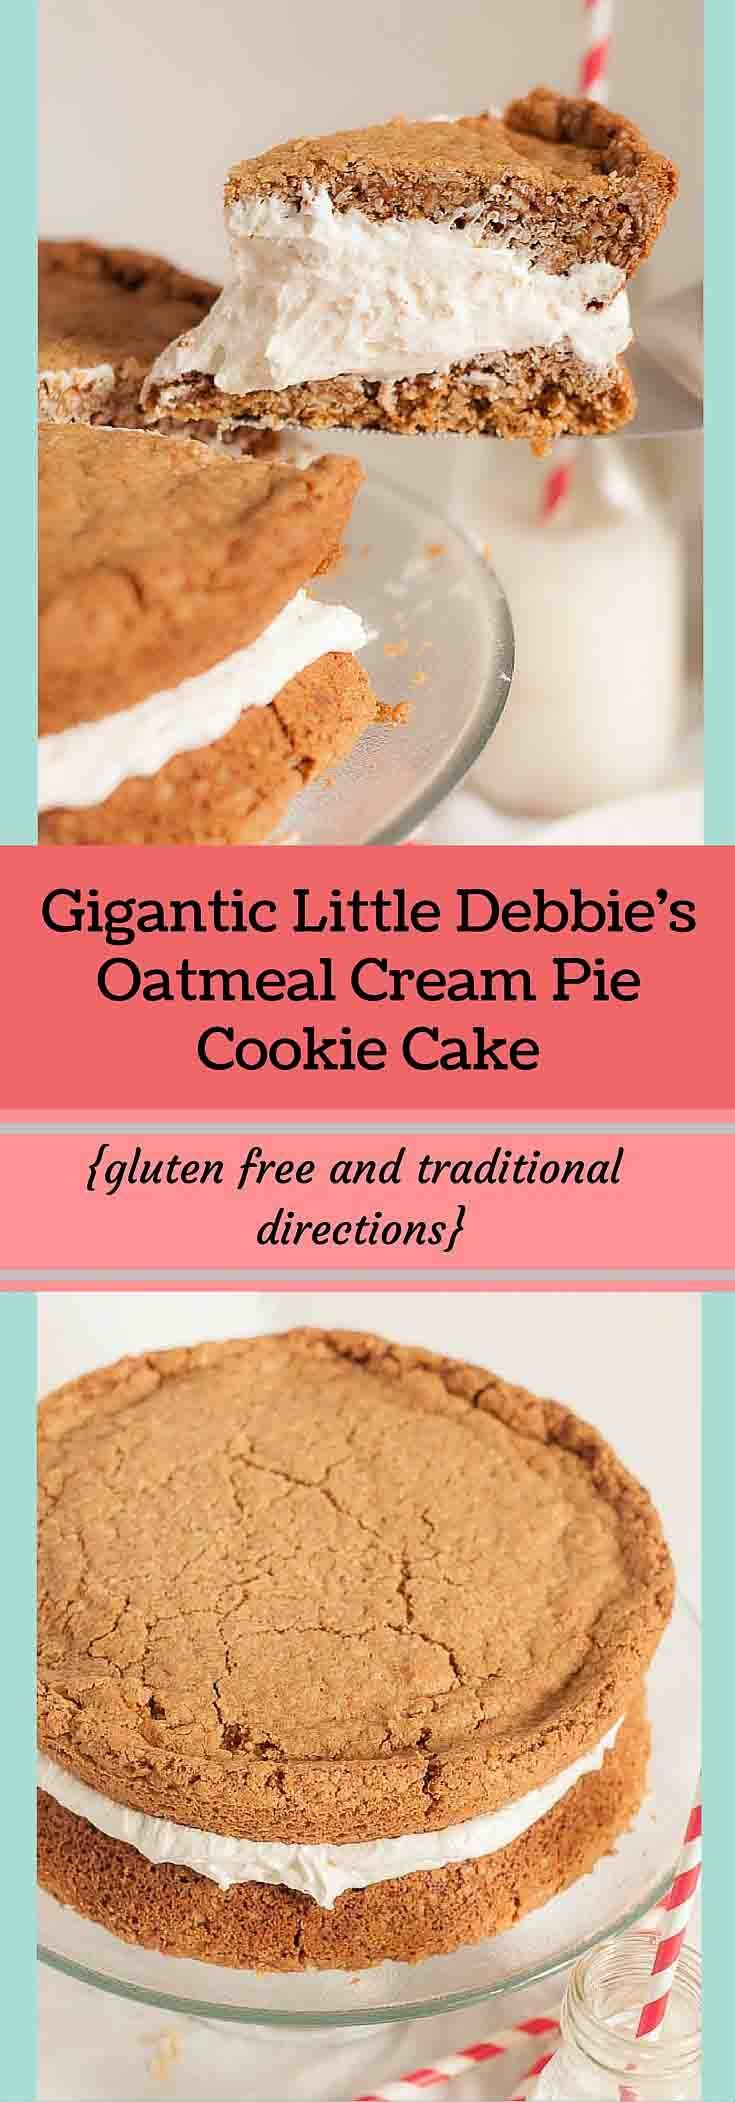 This Gigantic Little Debbie's Oatmeal Cream Pie Cake recipe is the exact epitome…